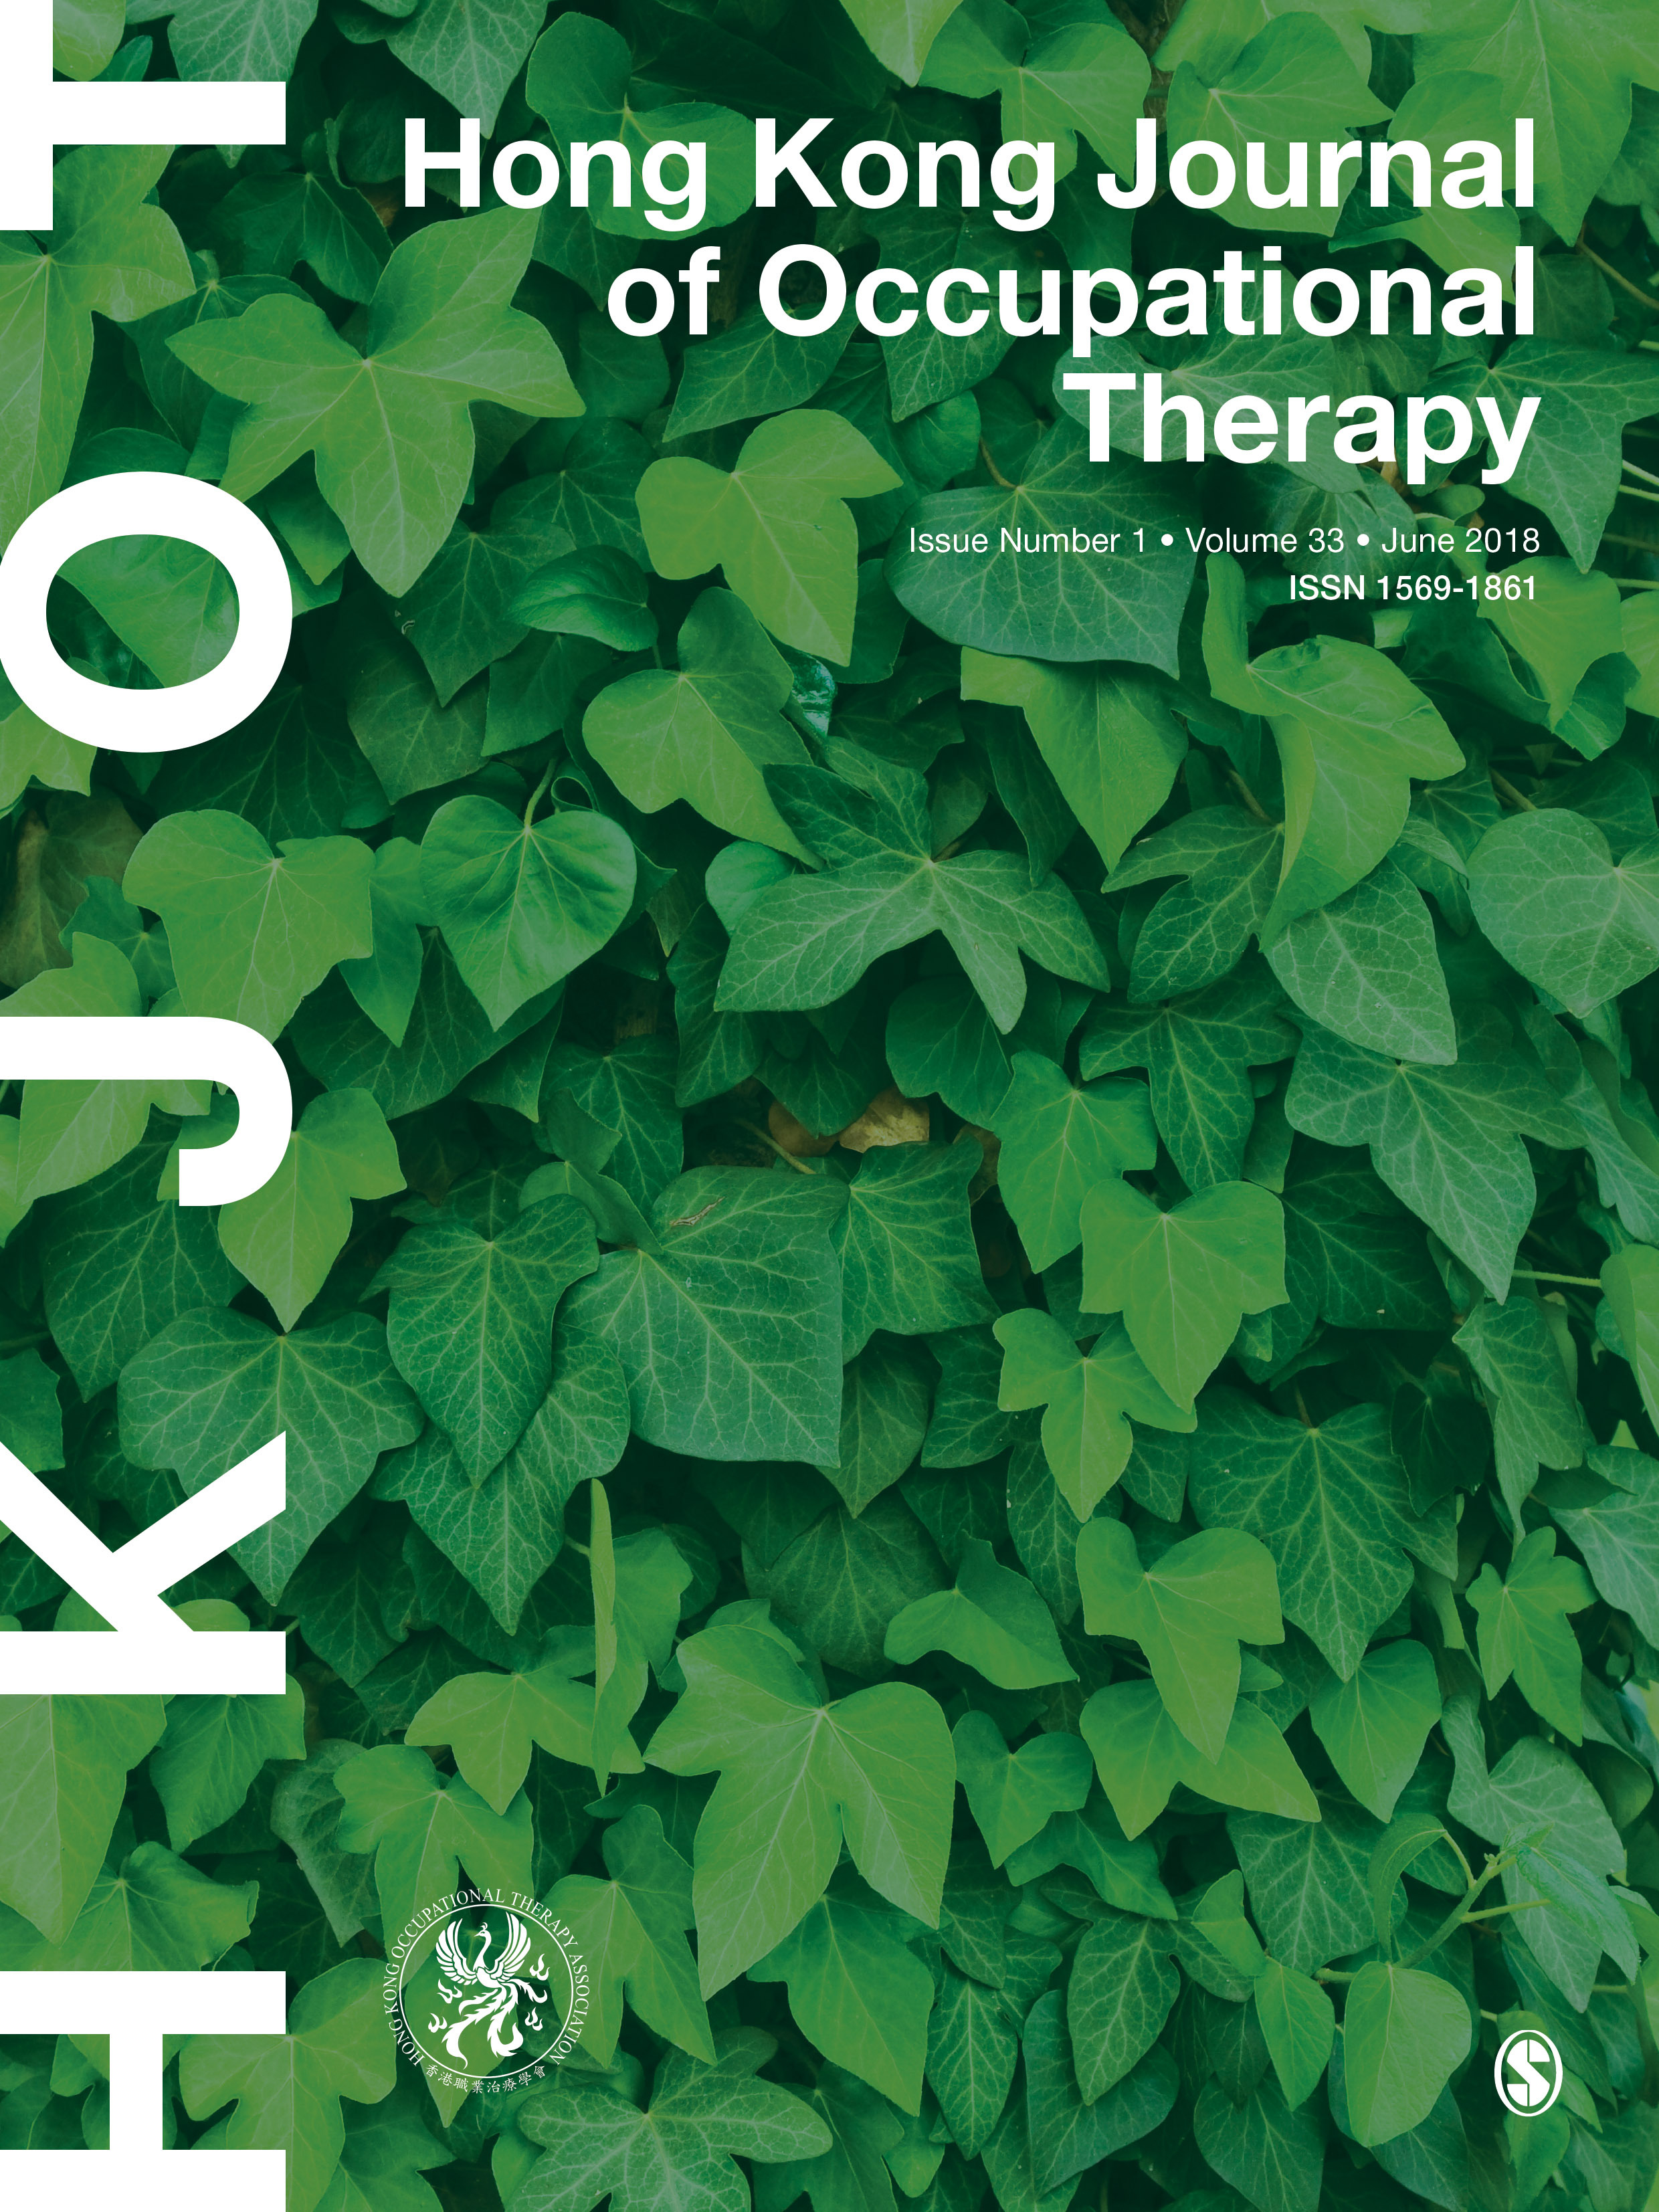 Hong Kong Journal of Occupational Therapy